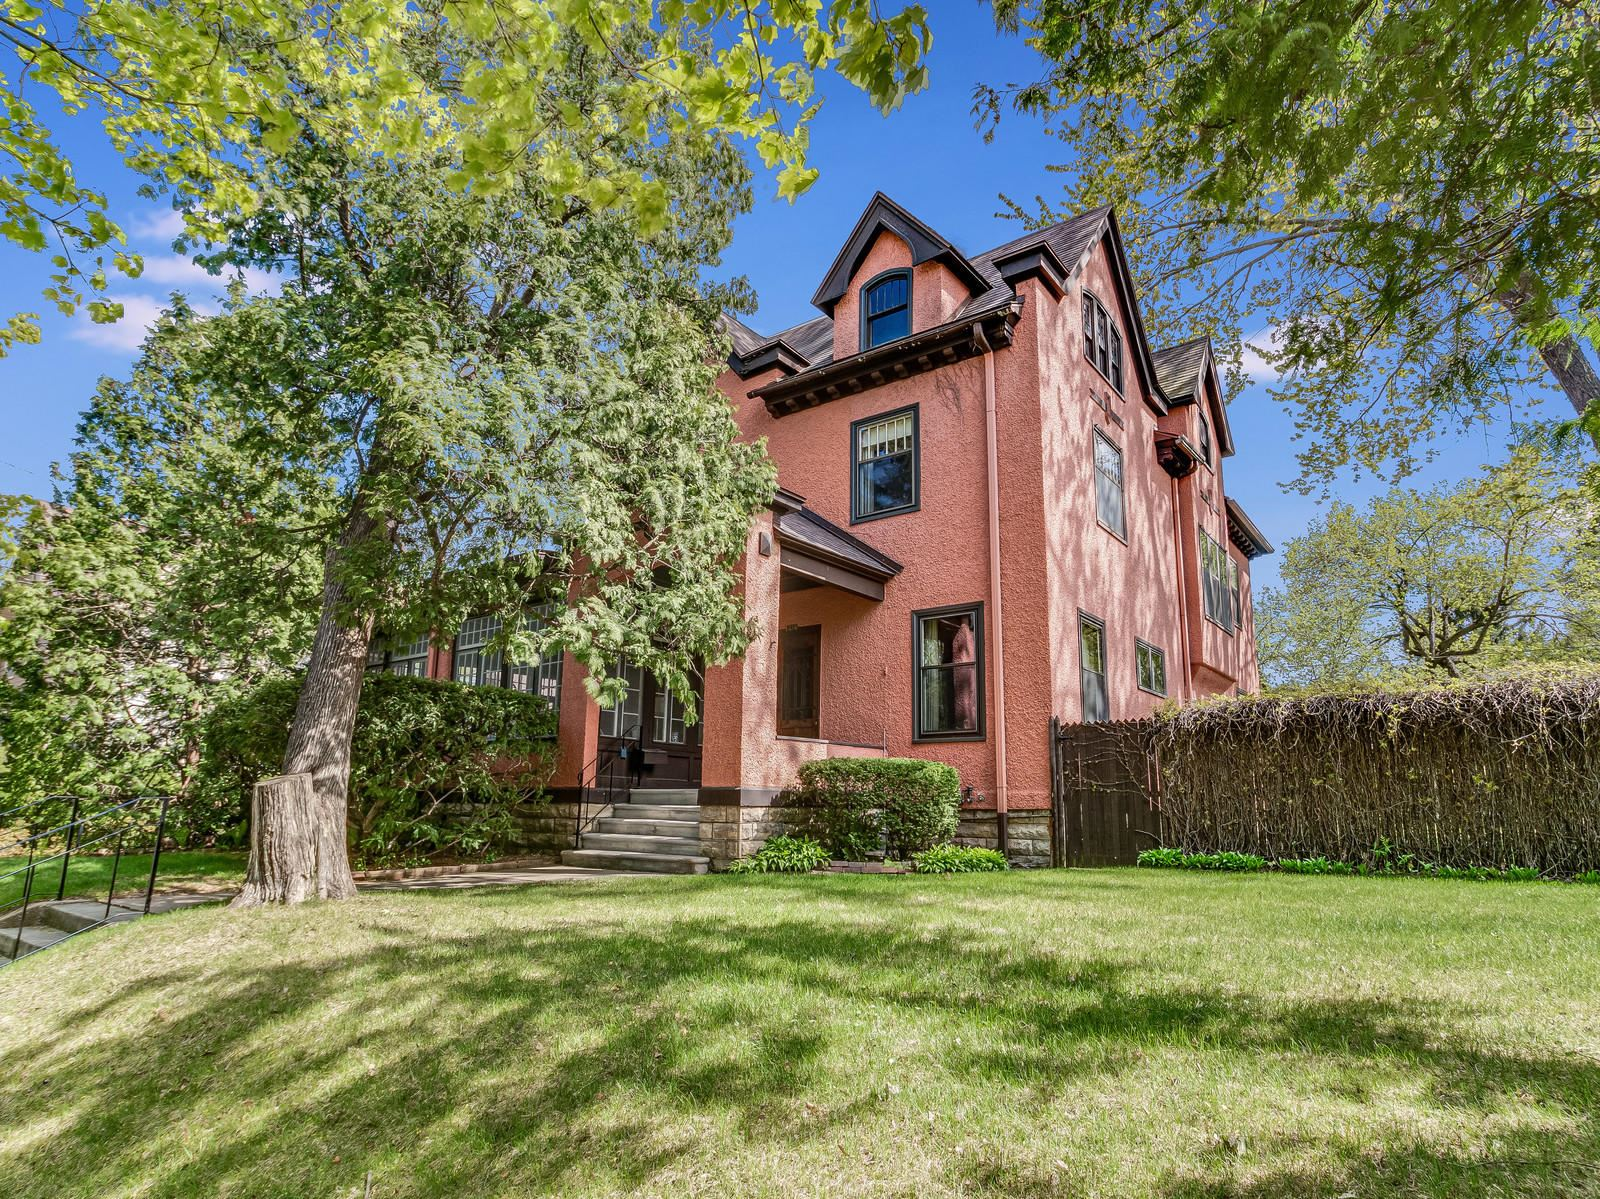 1414 MAIN ST, La Crosse, WI 54601 - MLS#: 1689230